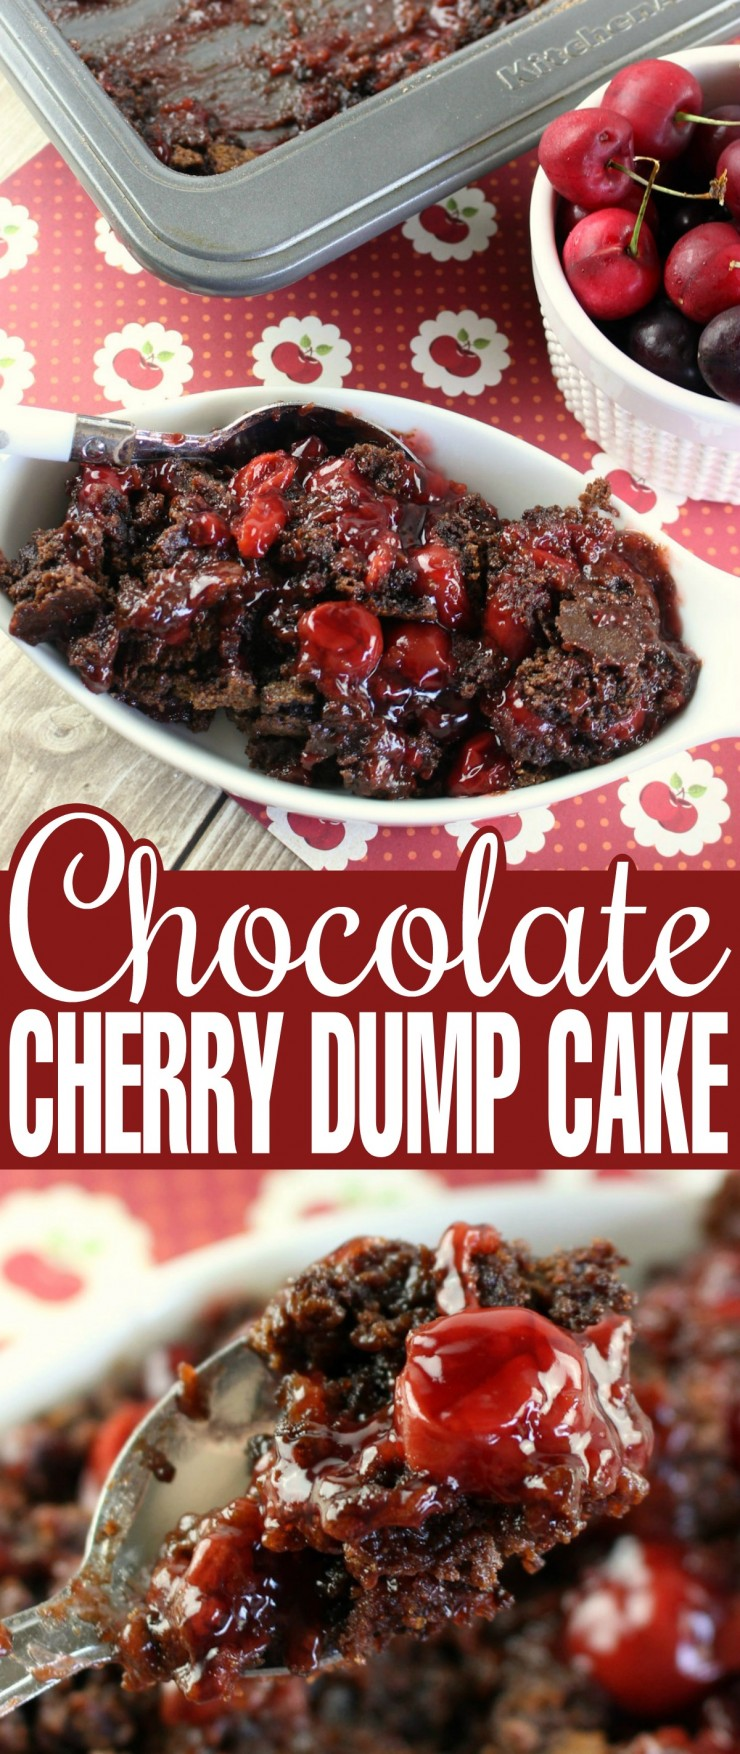 Chocolate Cherry Dump Cake is a super easy dessert that literally anyone can make. With just a handful of ingredients you probably have everything you need in your pantry right now to whip up a delicious pan of this chocolate cake layered over a bed of cherry pie filling.